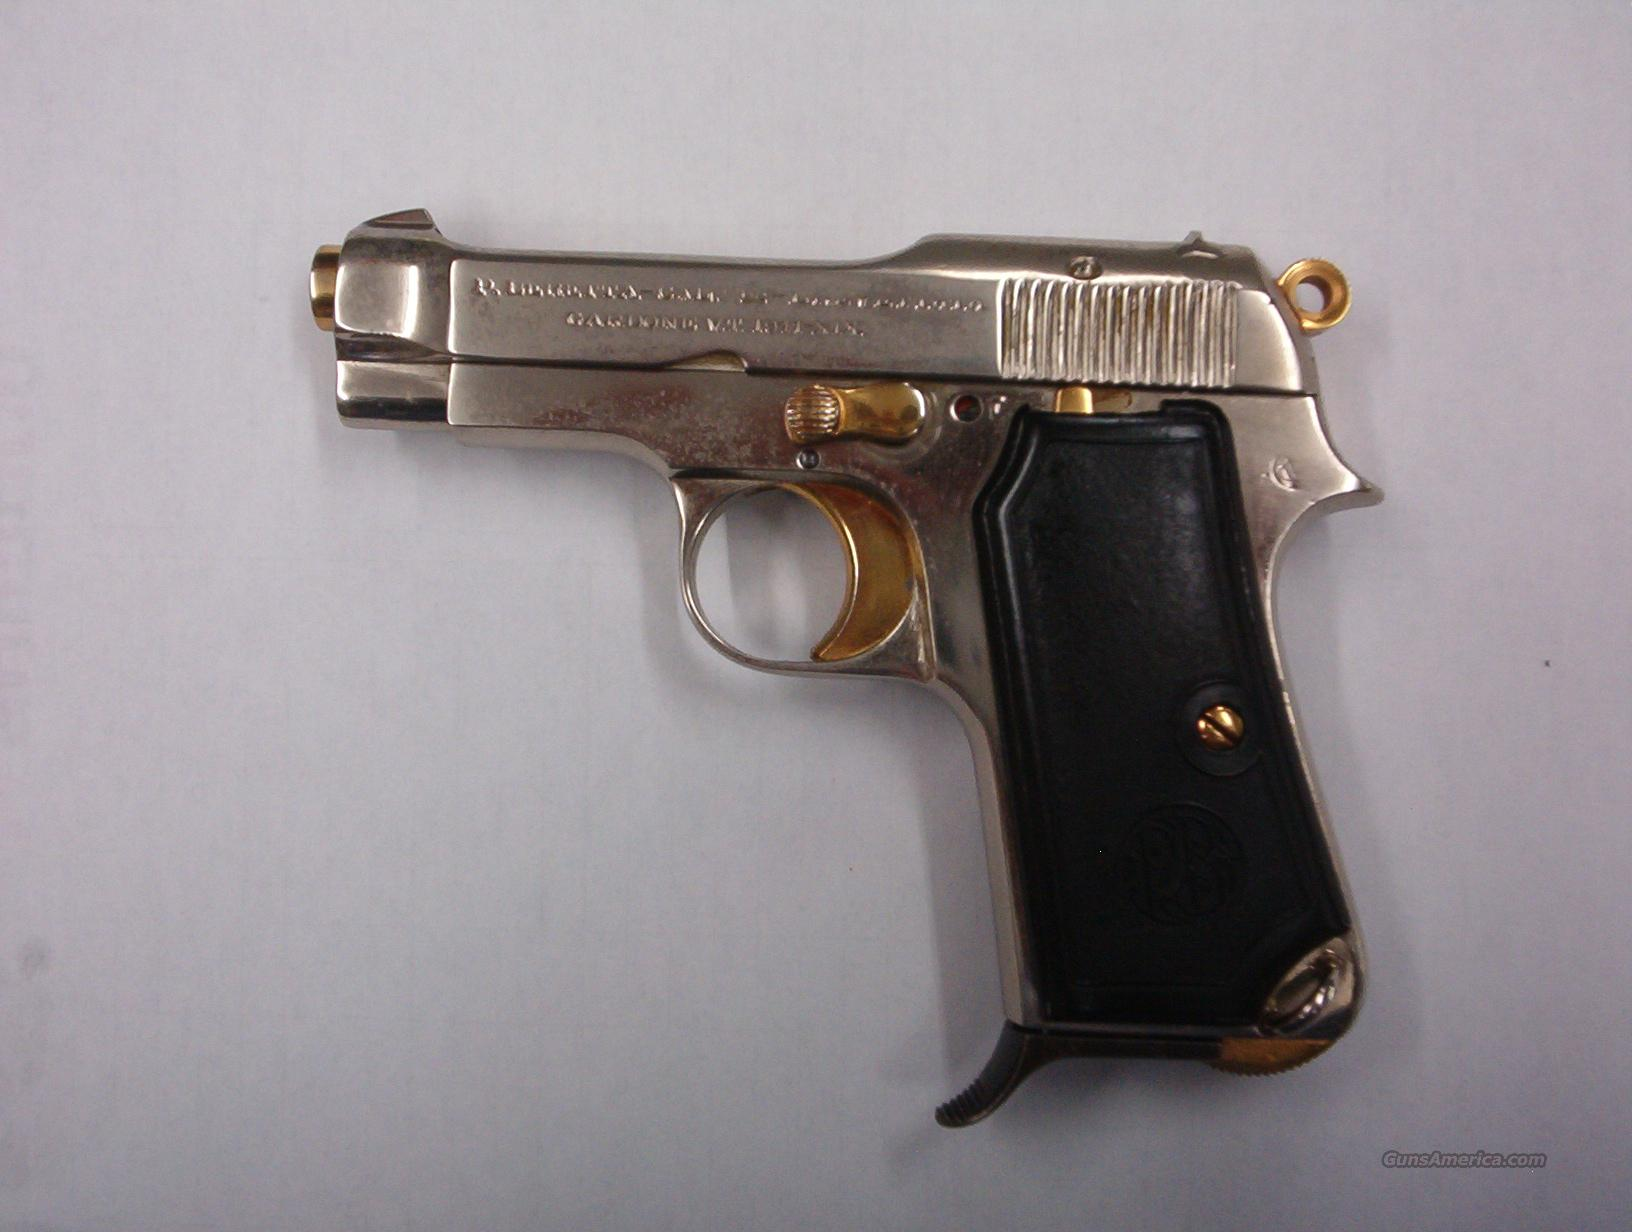 beretta model 1934 7.65(32 acp) cal.  Guns > Pistols > Beretta Pistols > Rare & Collectible